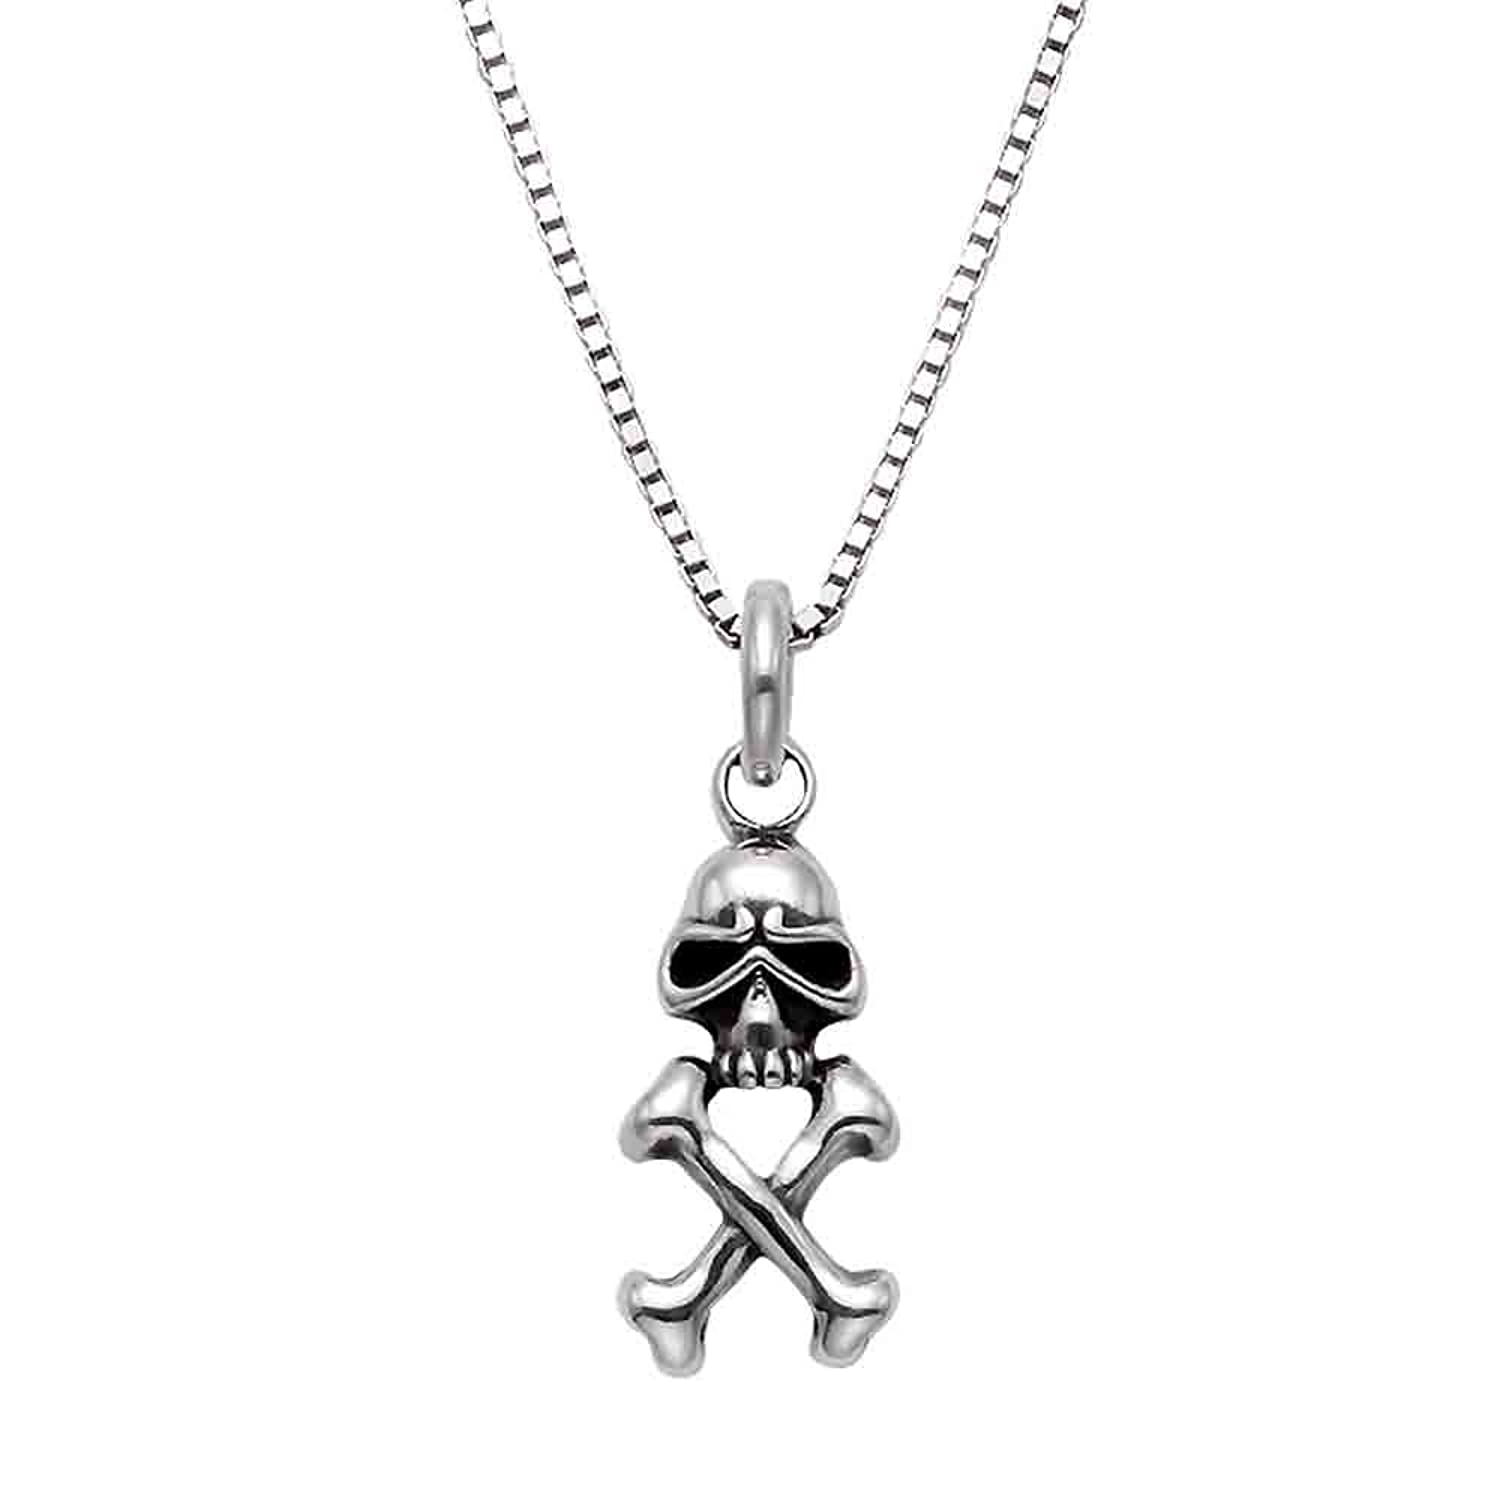 Small Sterling Silver Skull & Crossbones Pirate Pendant Chain